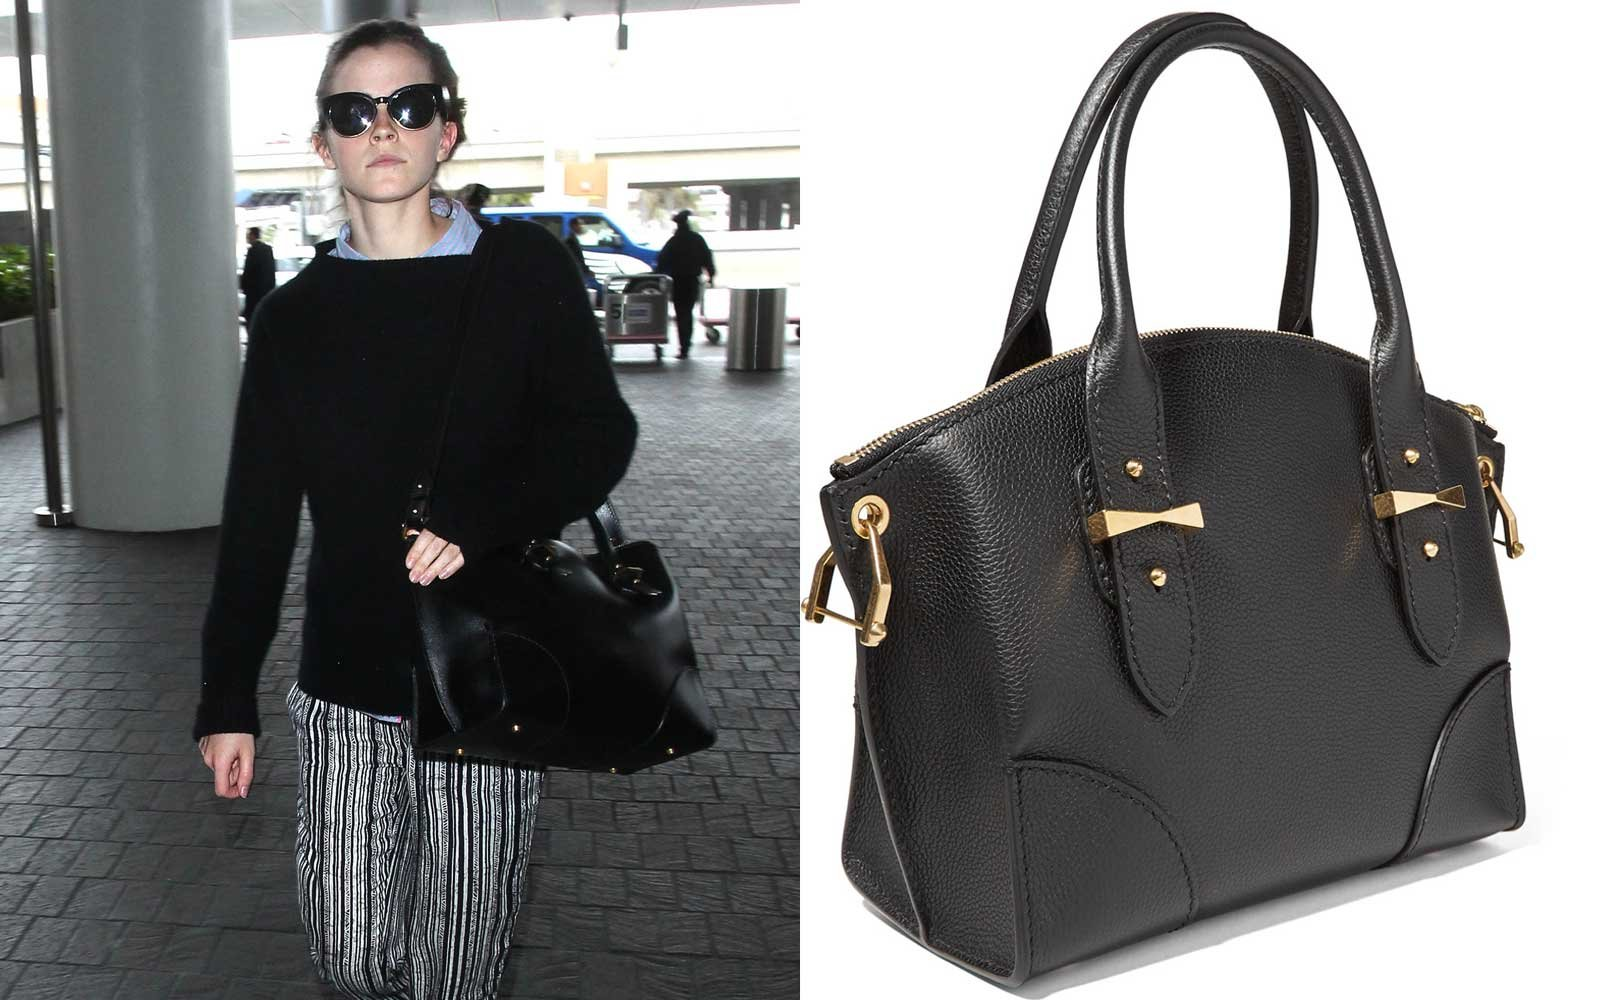 Celebrities' Favorite Handbags to Travel With